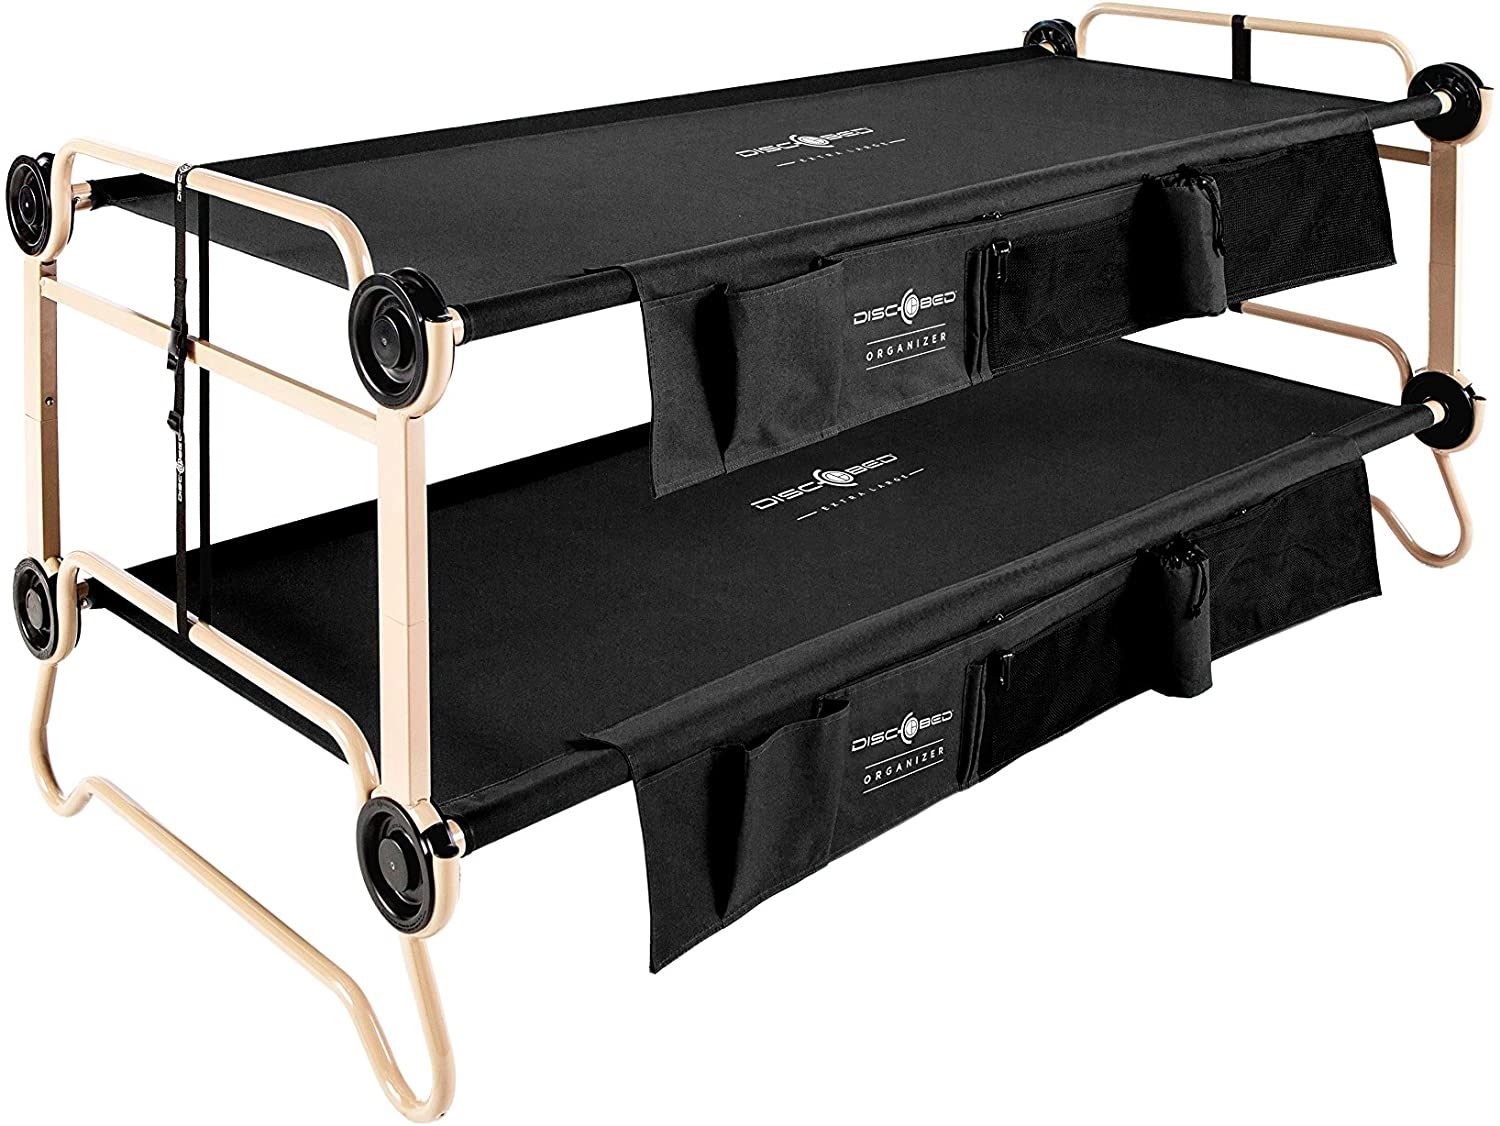 Amazon Com Disc O Bed With Organizers Black Large Sports Outdoors